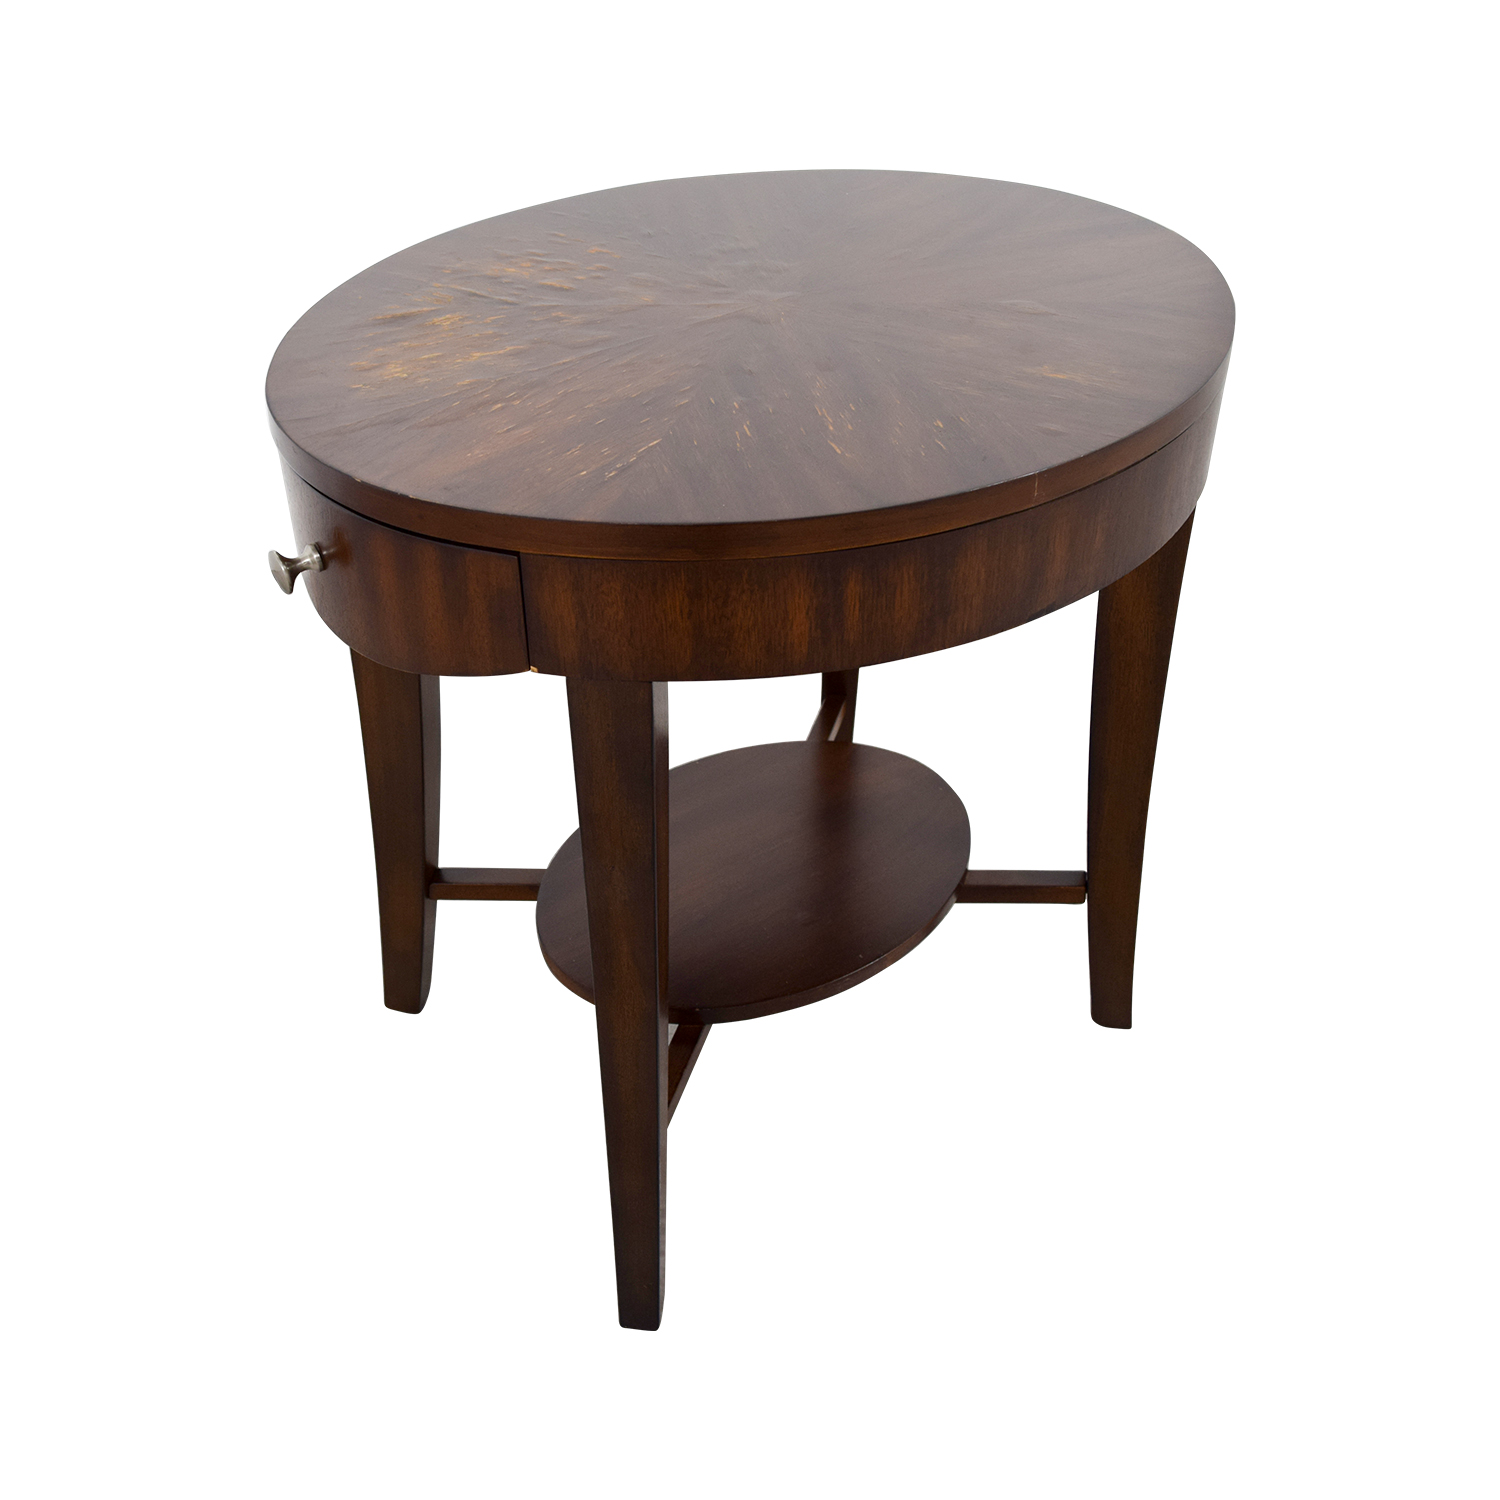 Raymour and Flannigan Raymour and Flanigan Round Side Table price